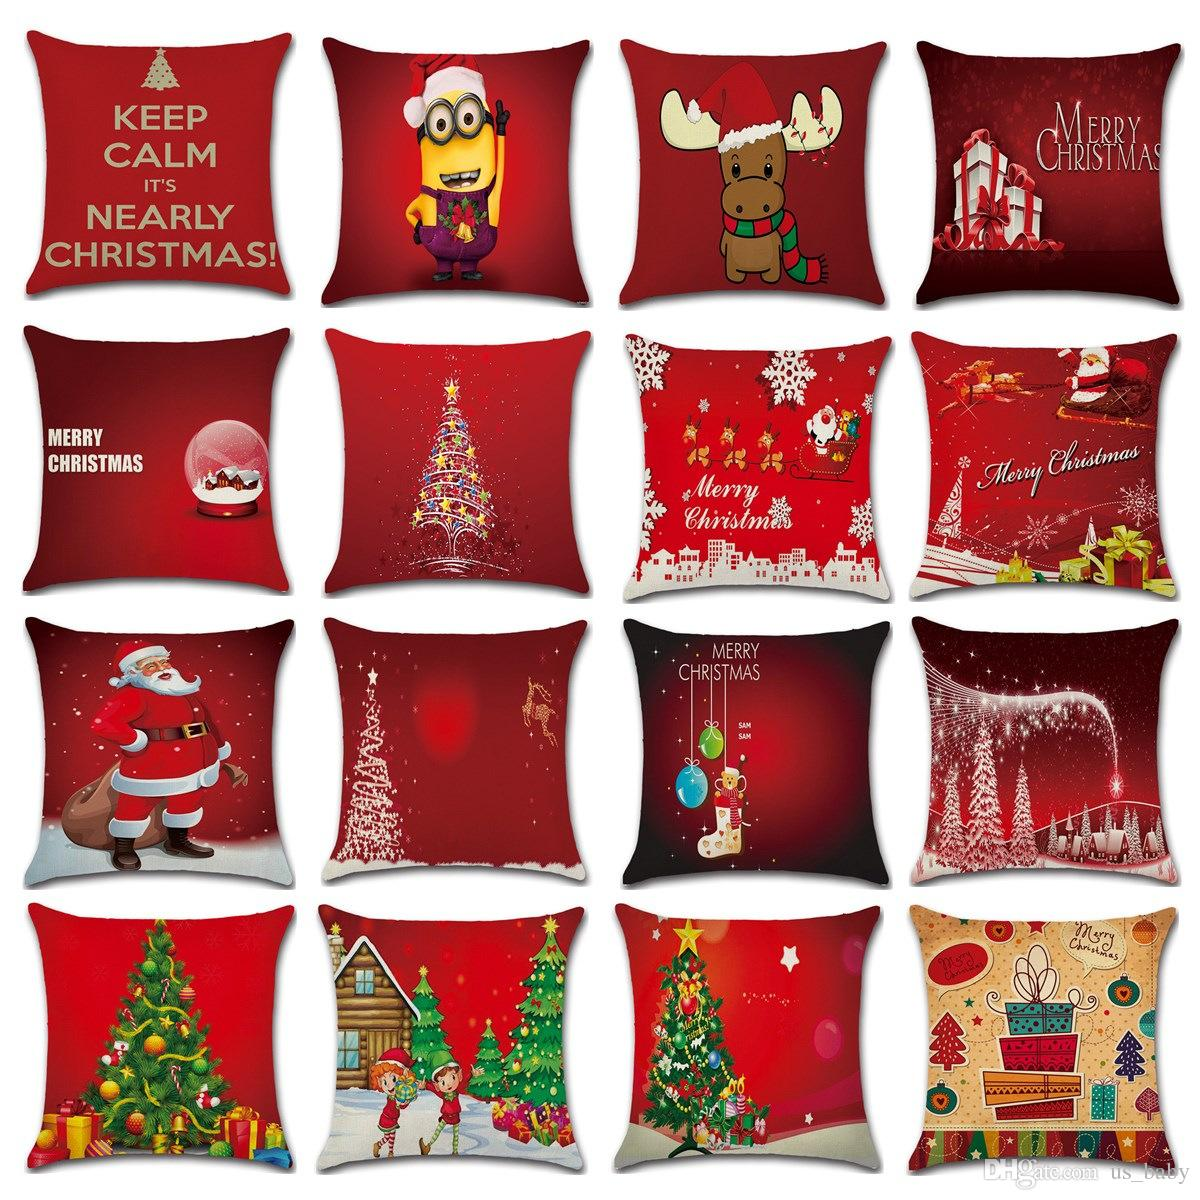 Christmas Pillows.Red Christmas Pillows Case Xmas New Year Christmas Tree Santa Claus Elk Cushion Covers Car Office Home Decorative Pillow Cover 16styles Pillow For